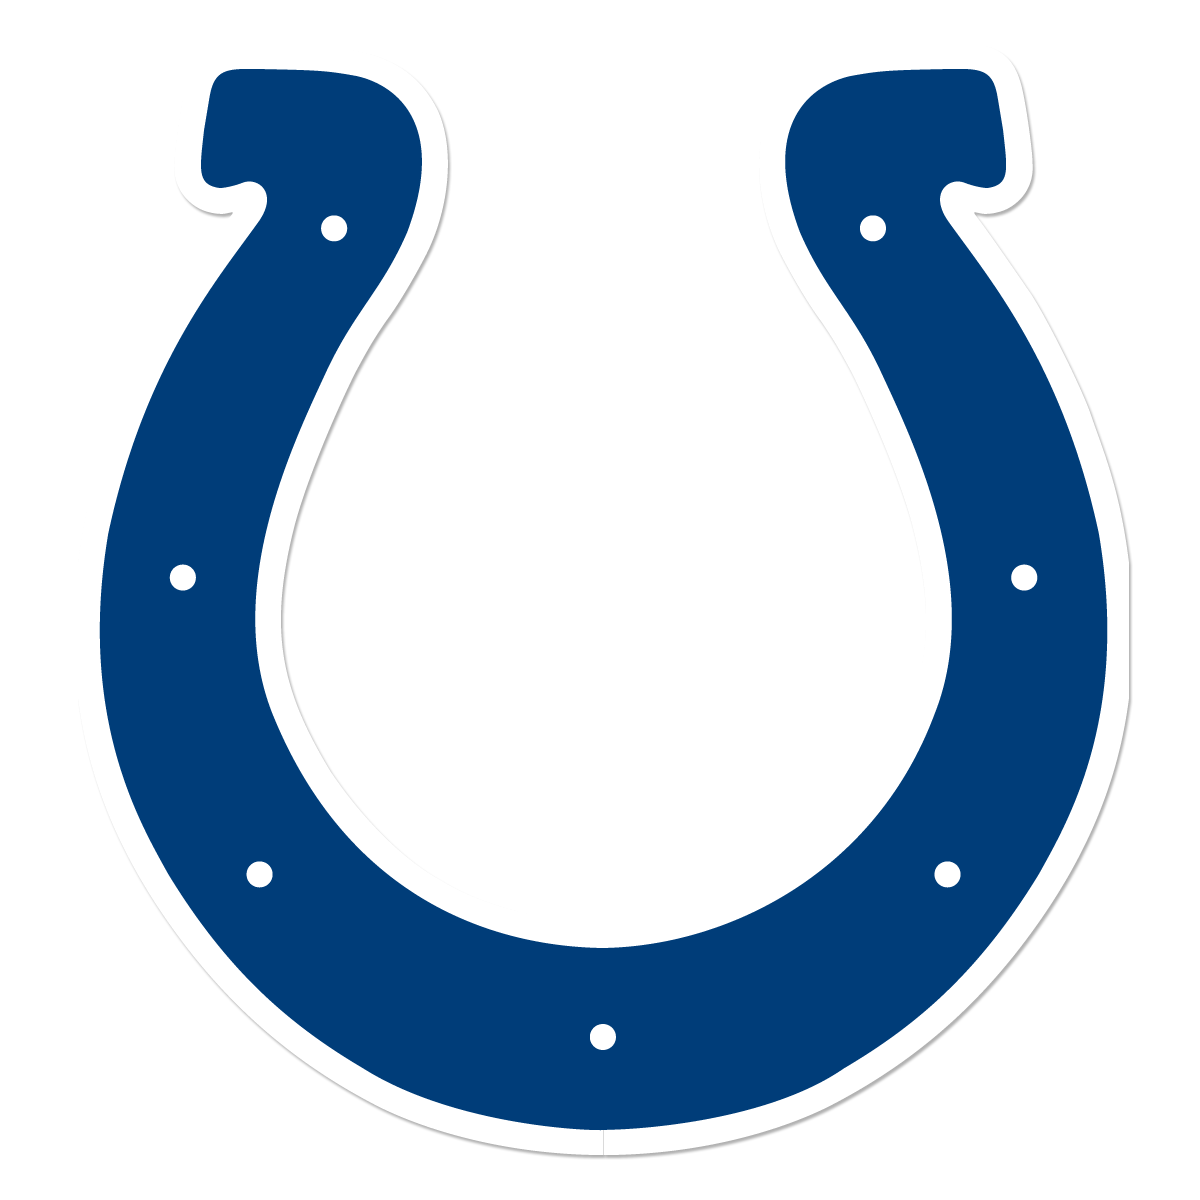 Cows group colts logo. Horseshoe clipart two